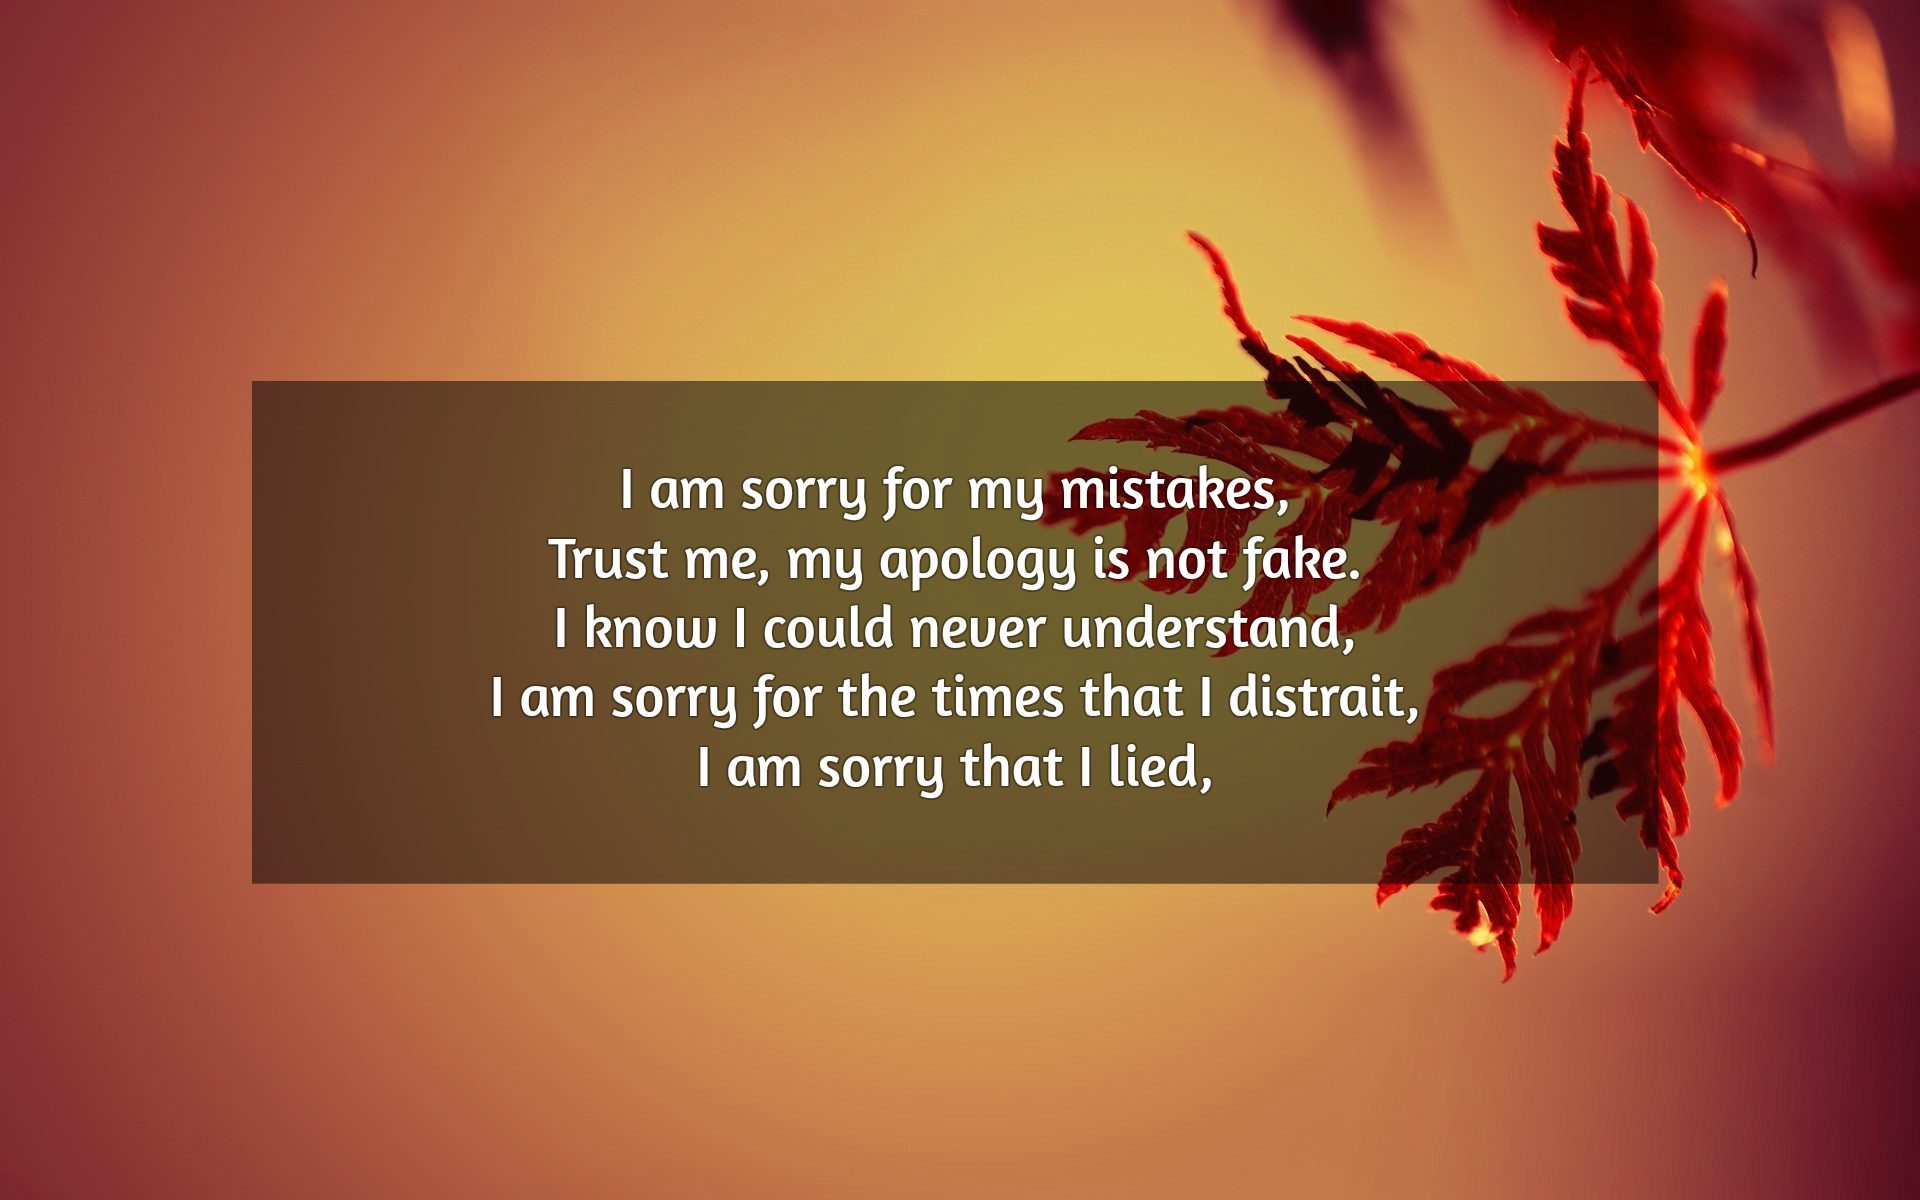 how to write an apology poem